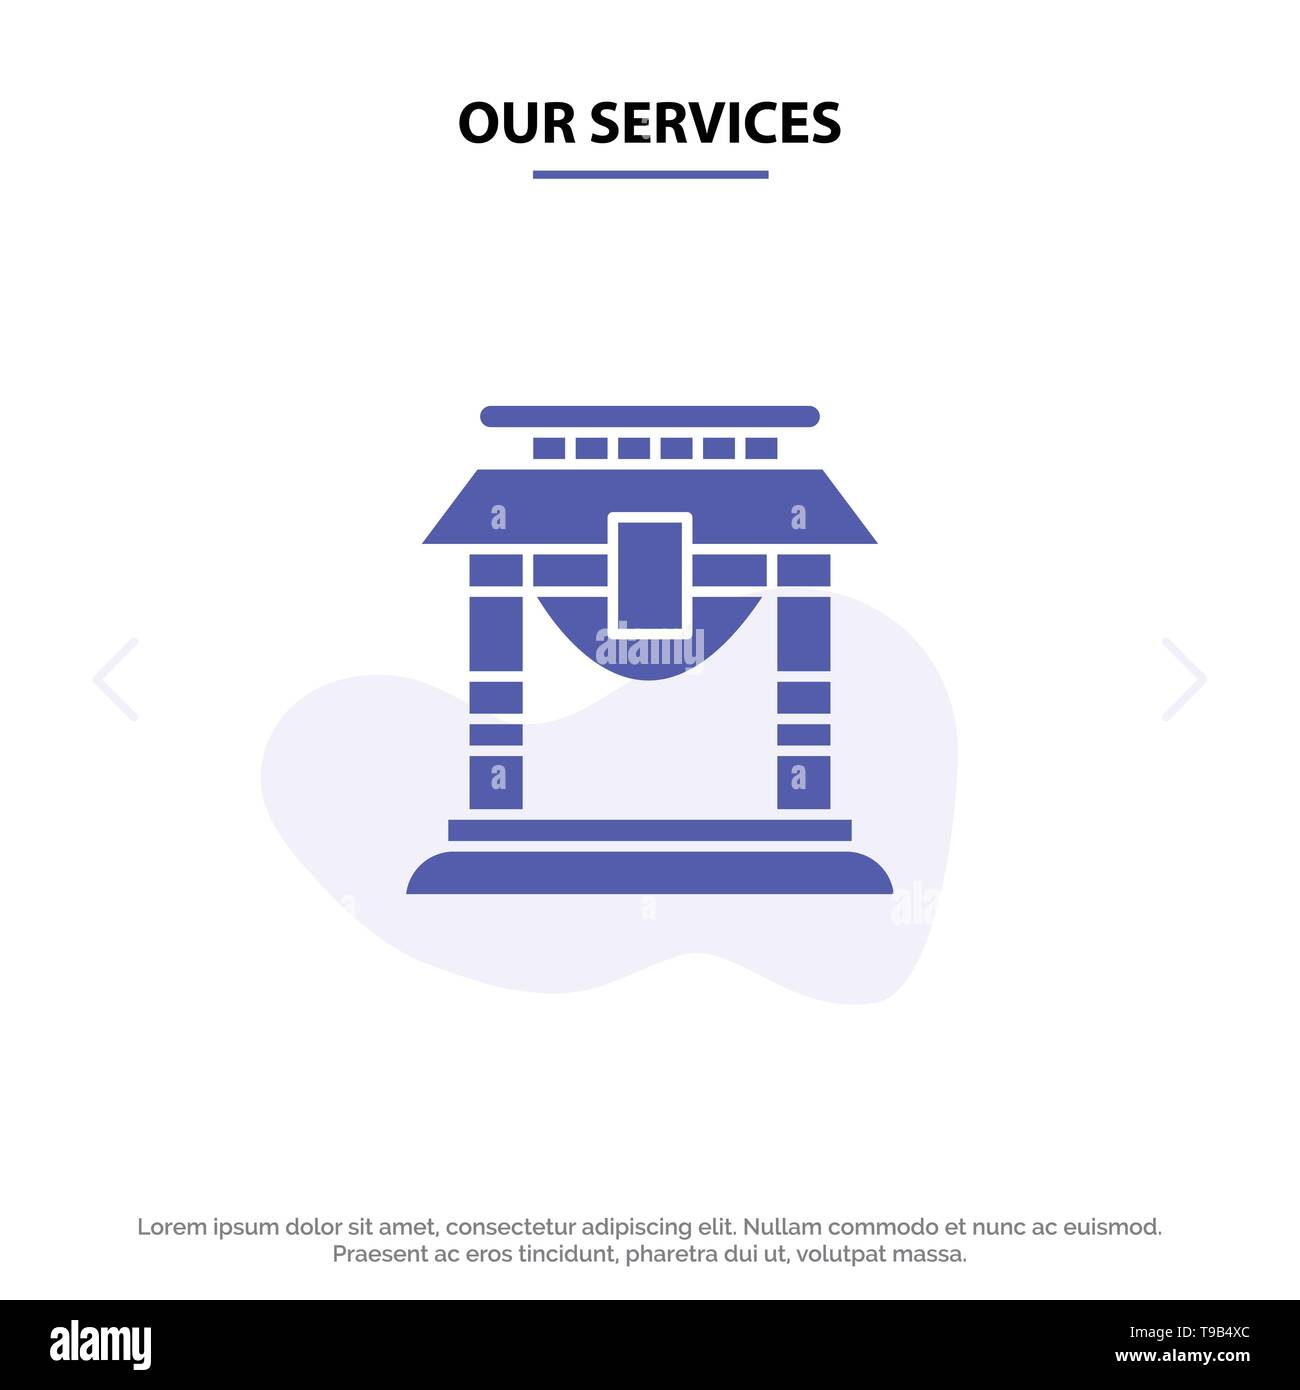 Our Services Door, Bridge, China, Chinese Solid Glyph Icon Web card Template - Stock Image